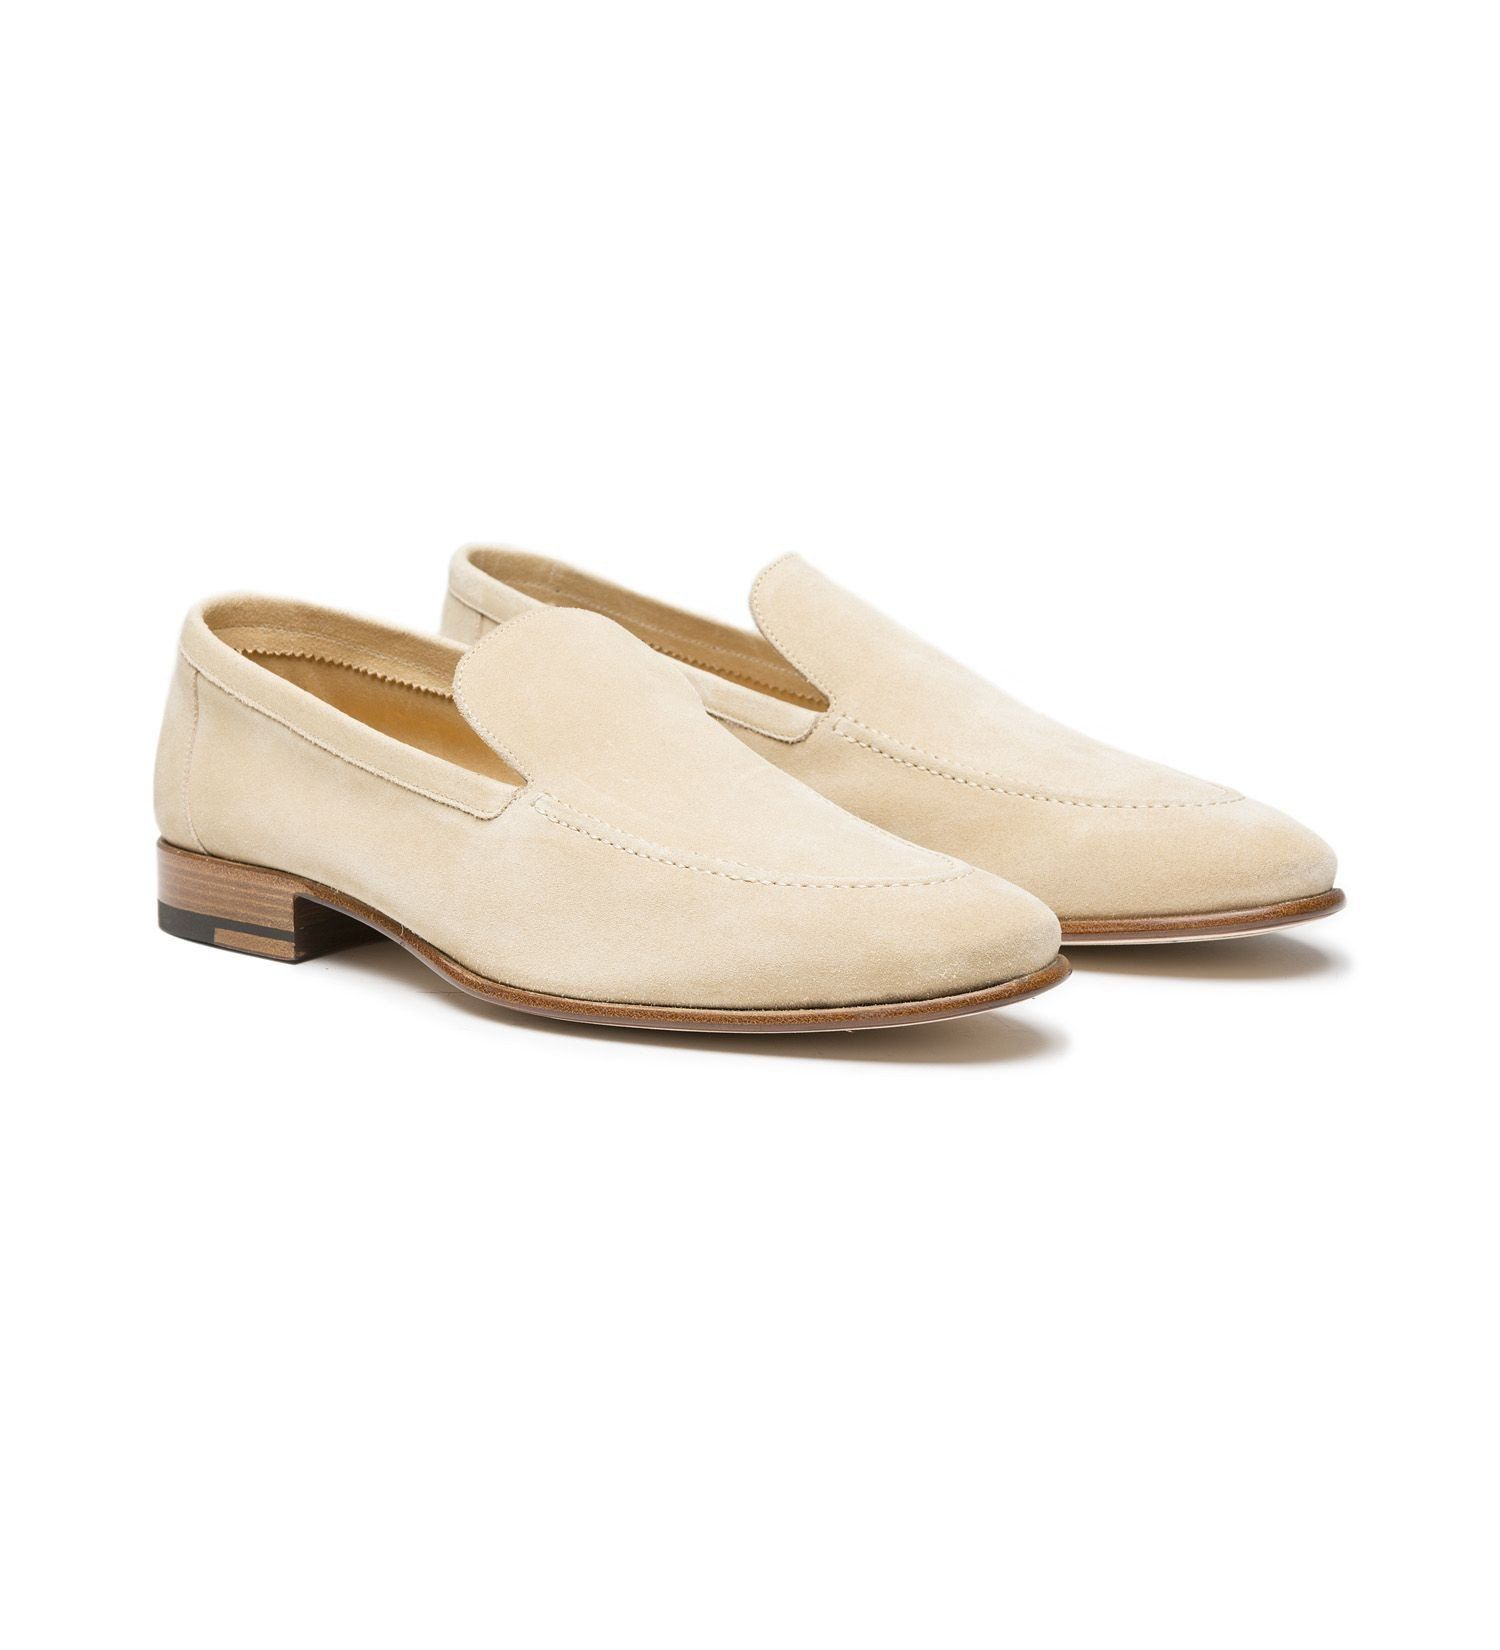 UNLINED SLIP-ON,SHOES,A.TESTONI, | GentRow.com